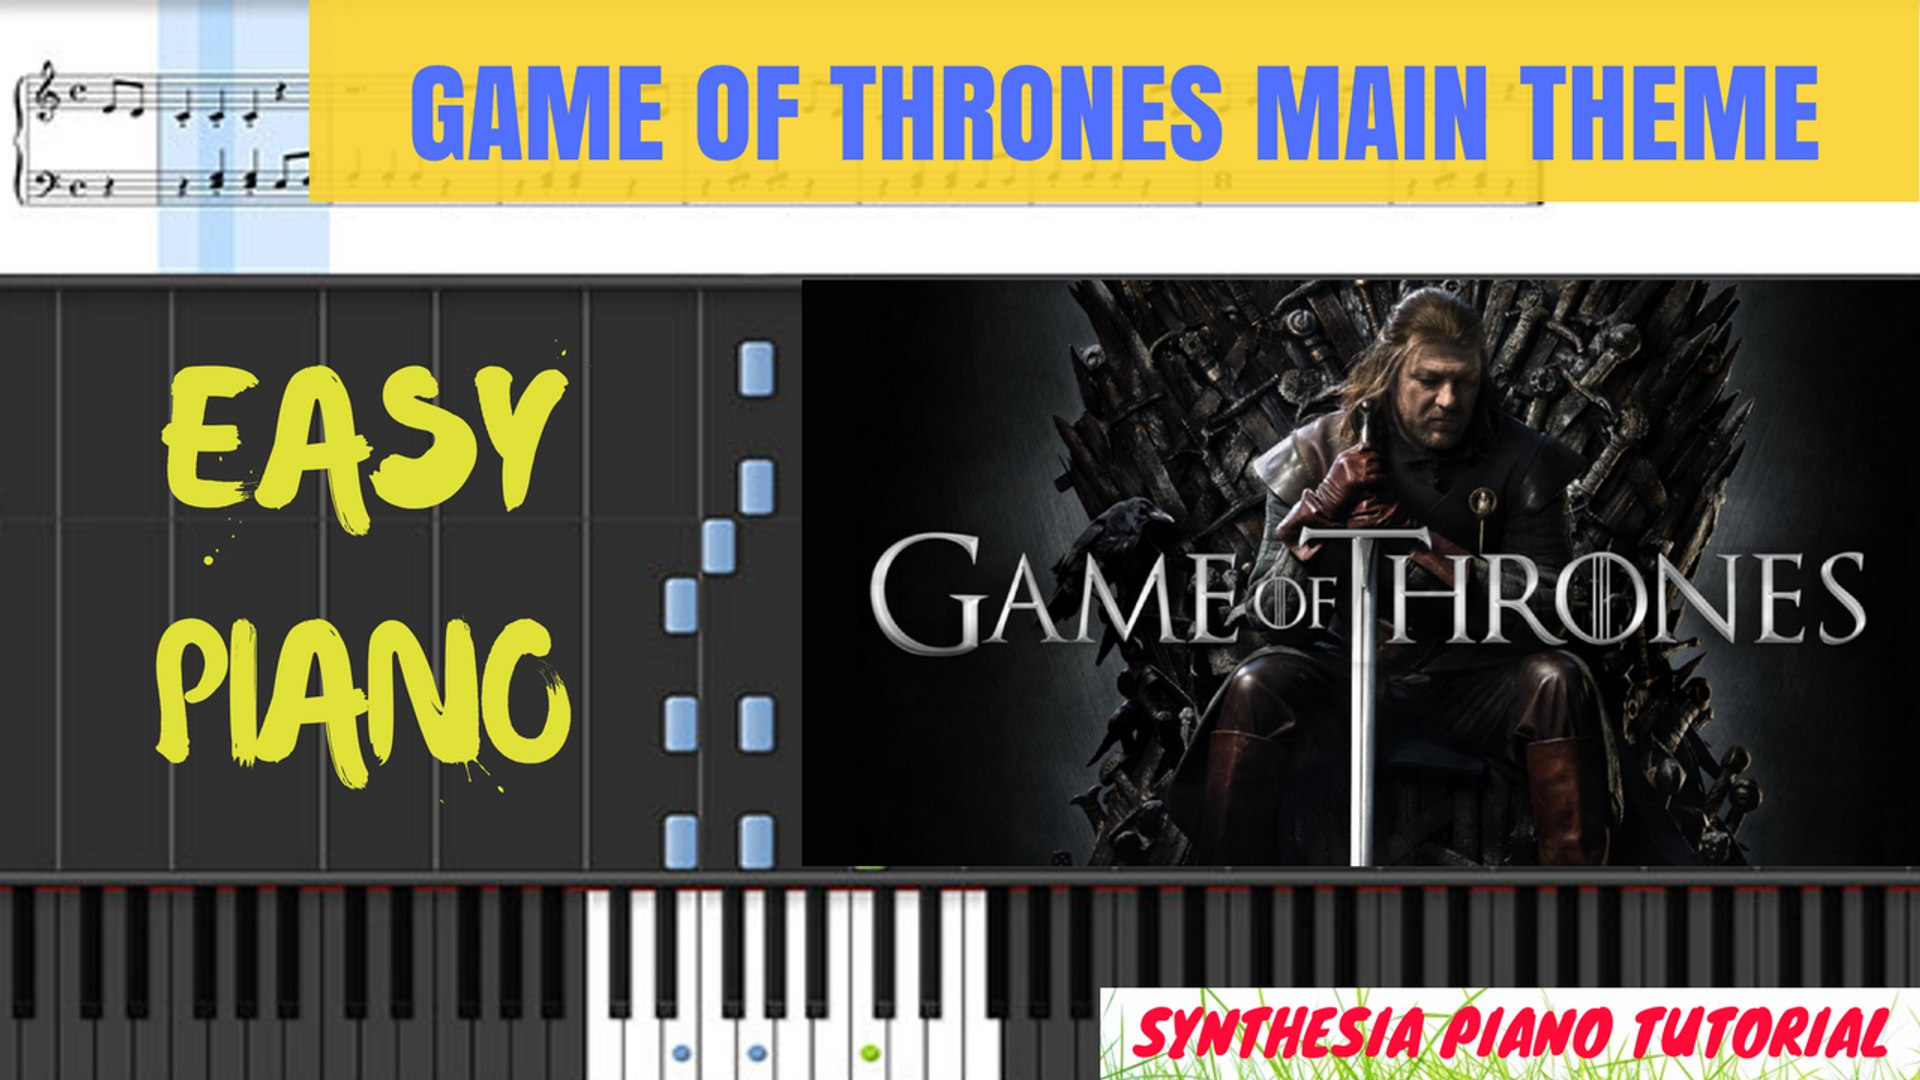 Game Of Thrones Titelmusik Klaviernoten game of thrones main theme __ easy piano (tutorial _ cover) sheets music __  synthesia